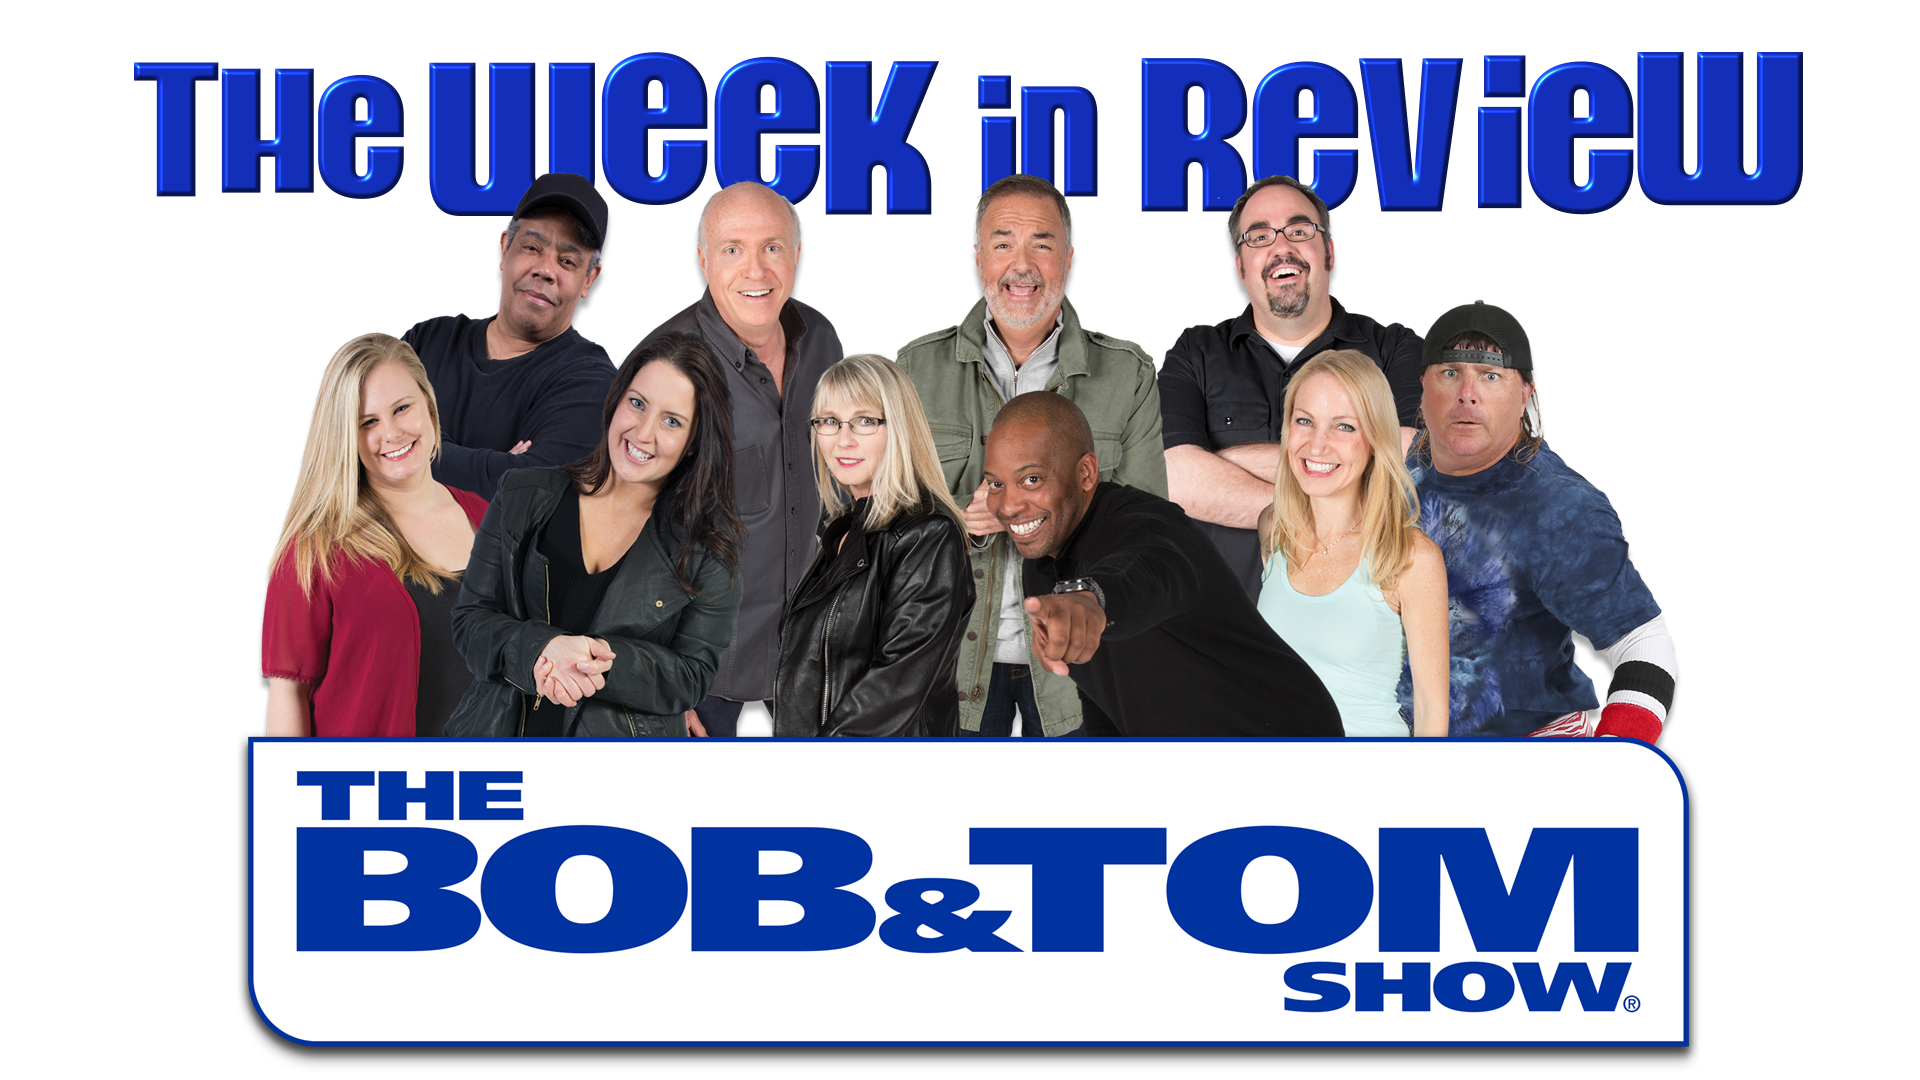 The BOB & TOM Show Week in Review – May 3, 2019